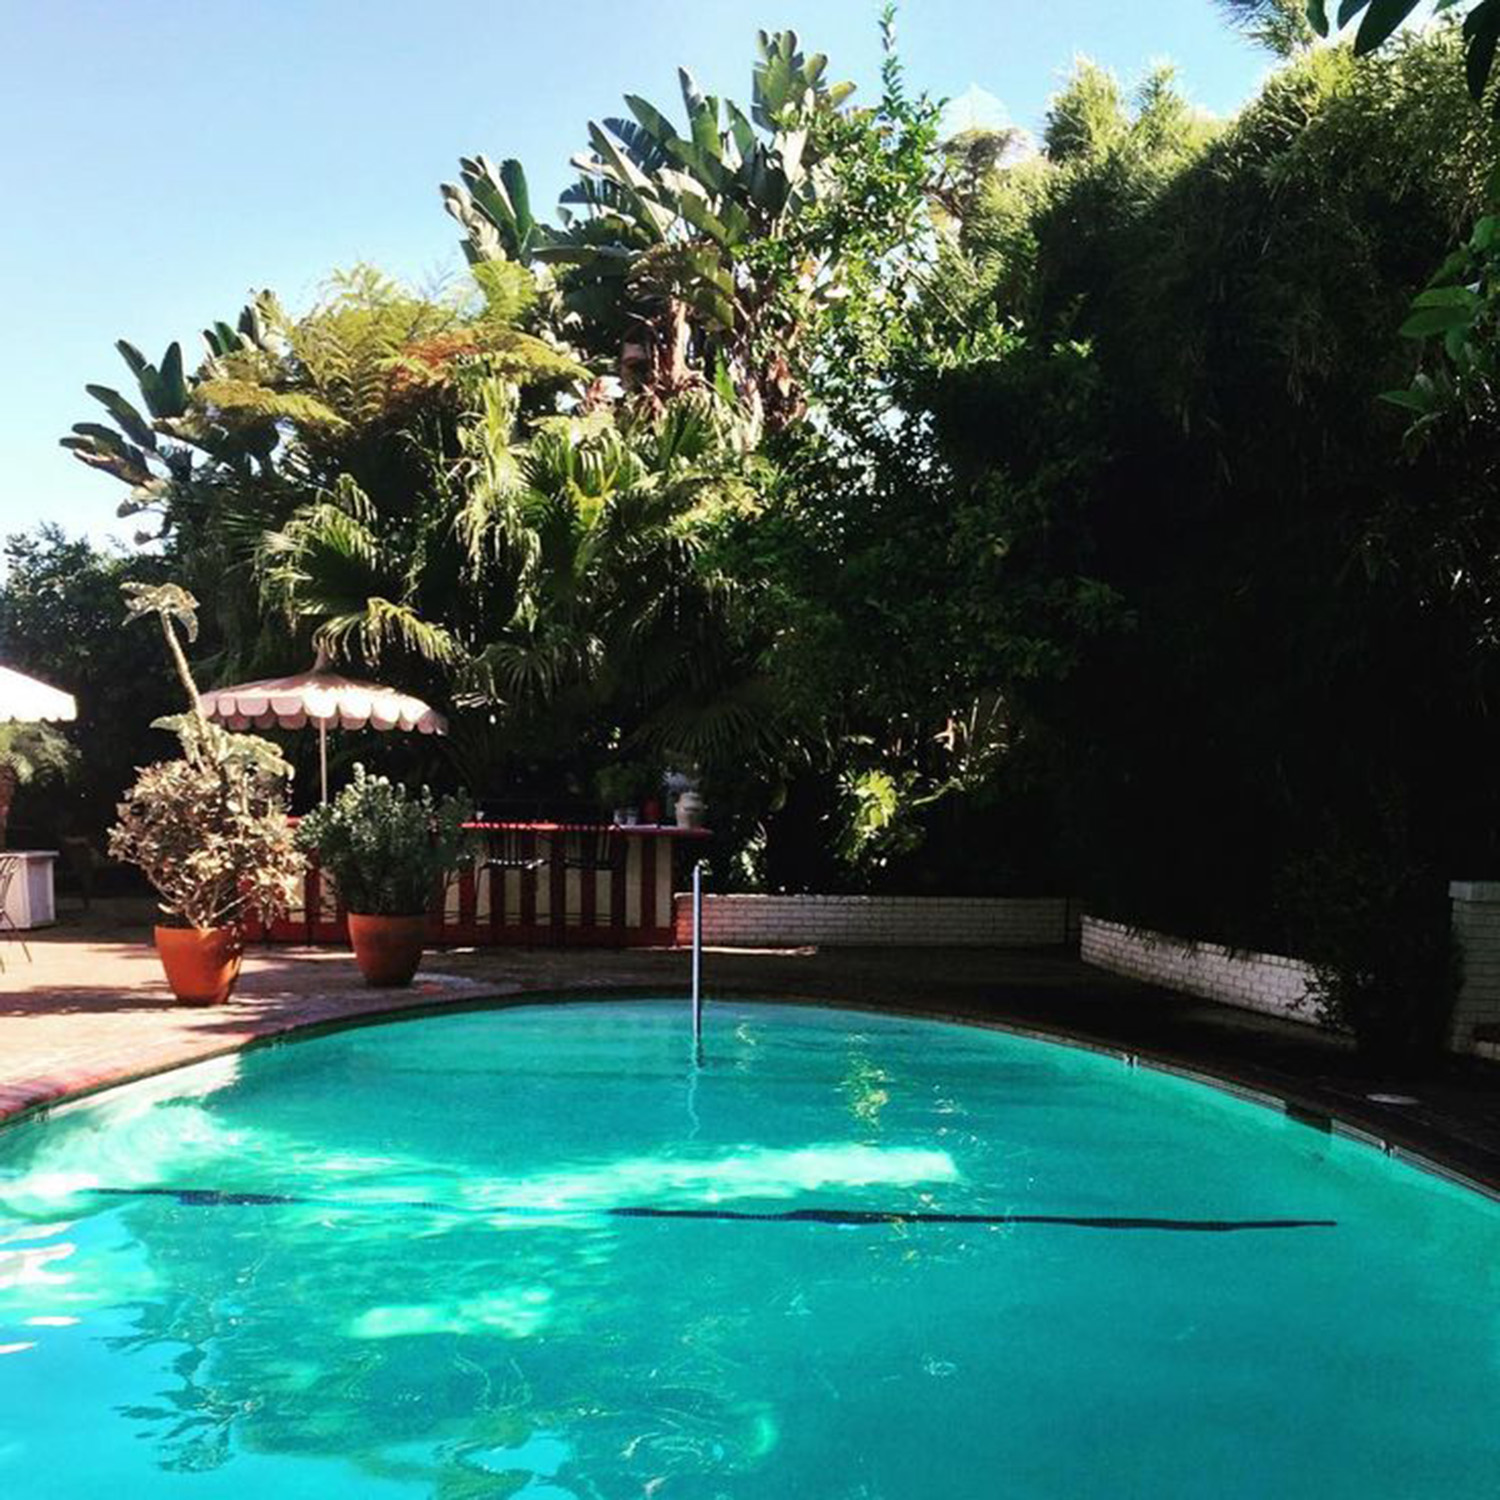 The pool at Chateau Marmont is surrounded by a thick garden and tall hedges